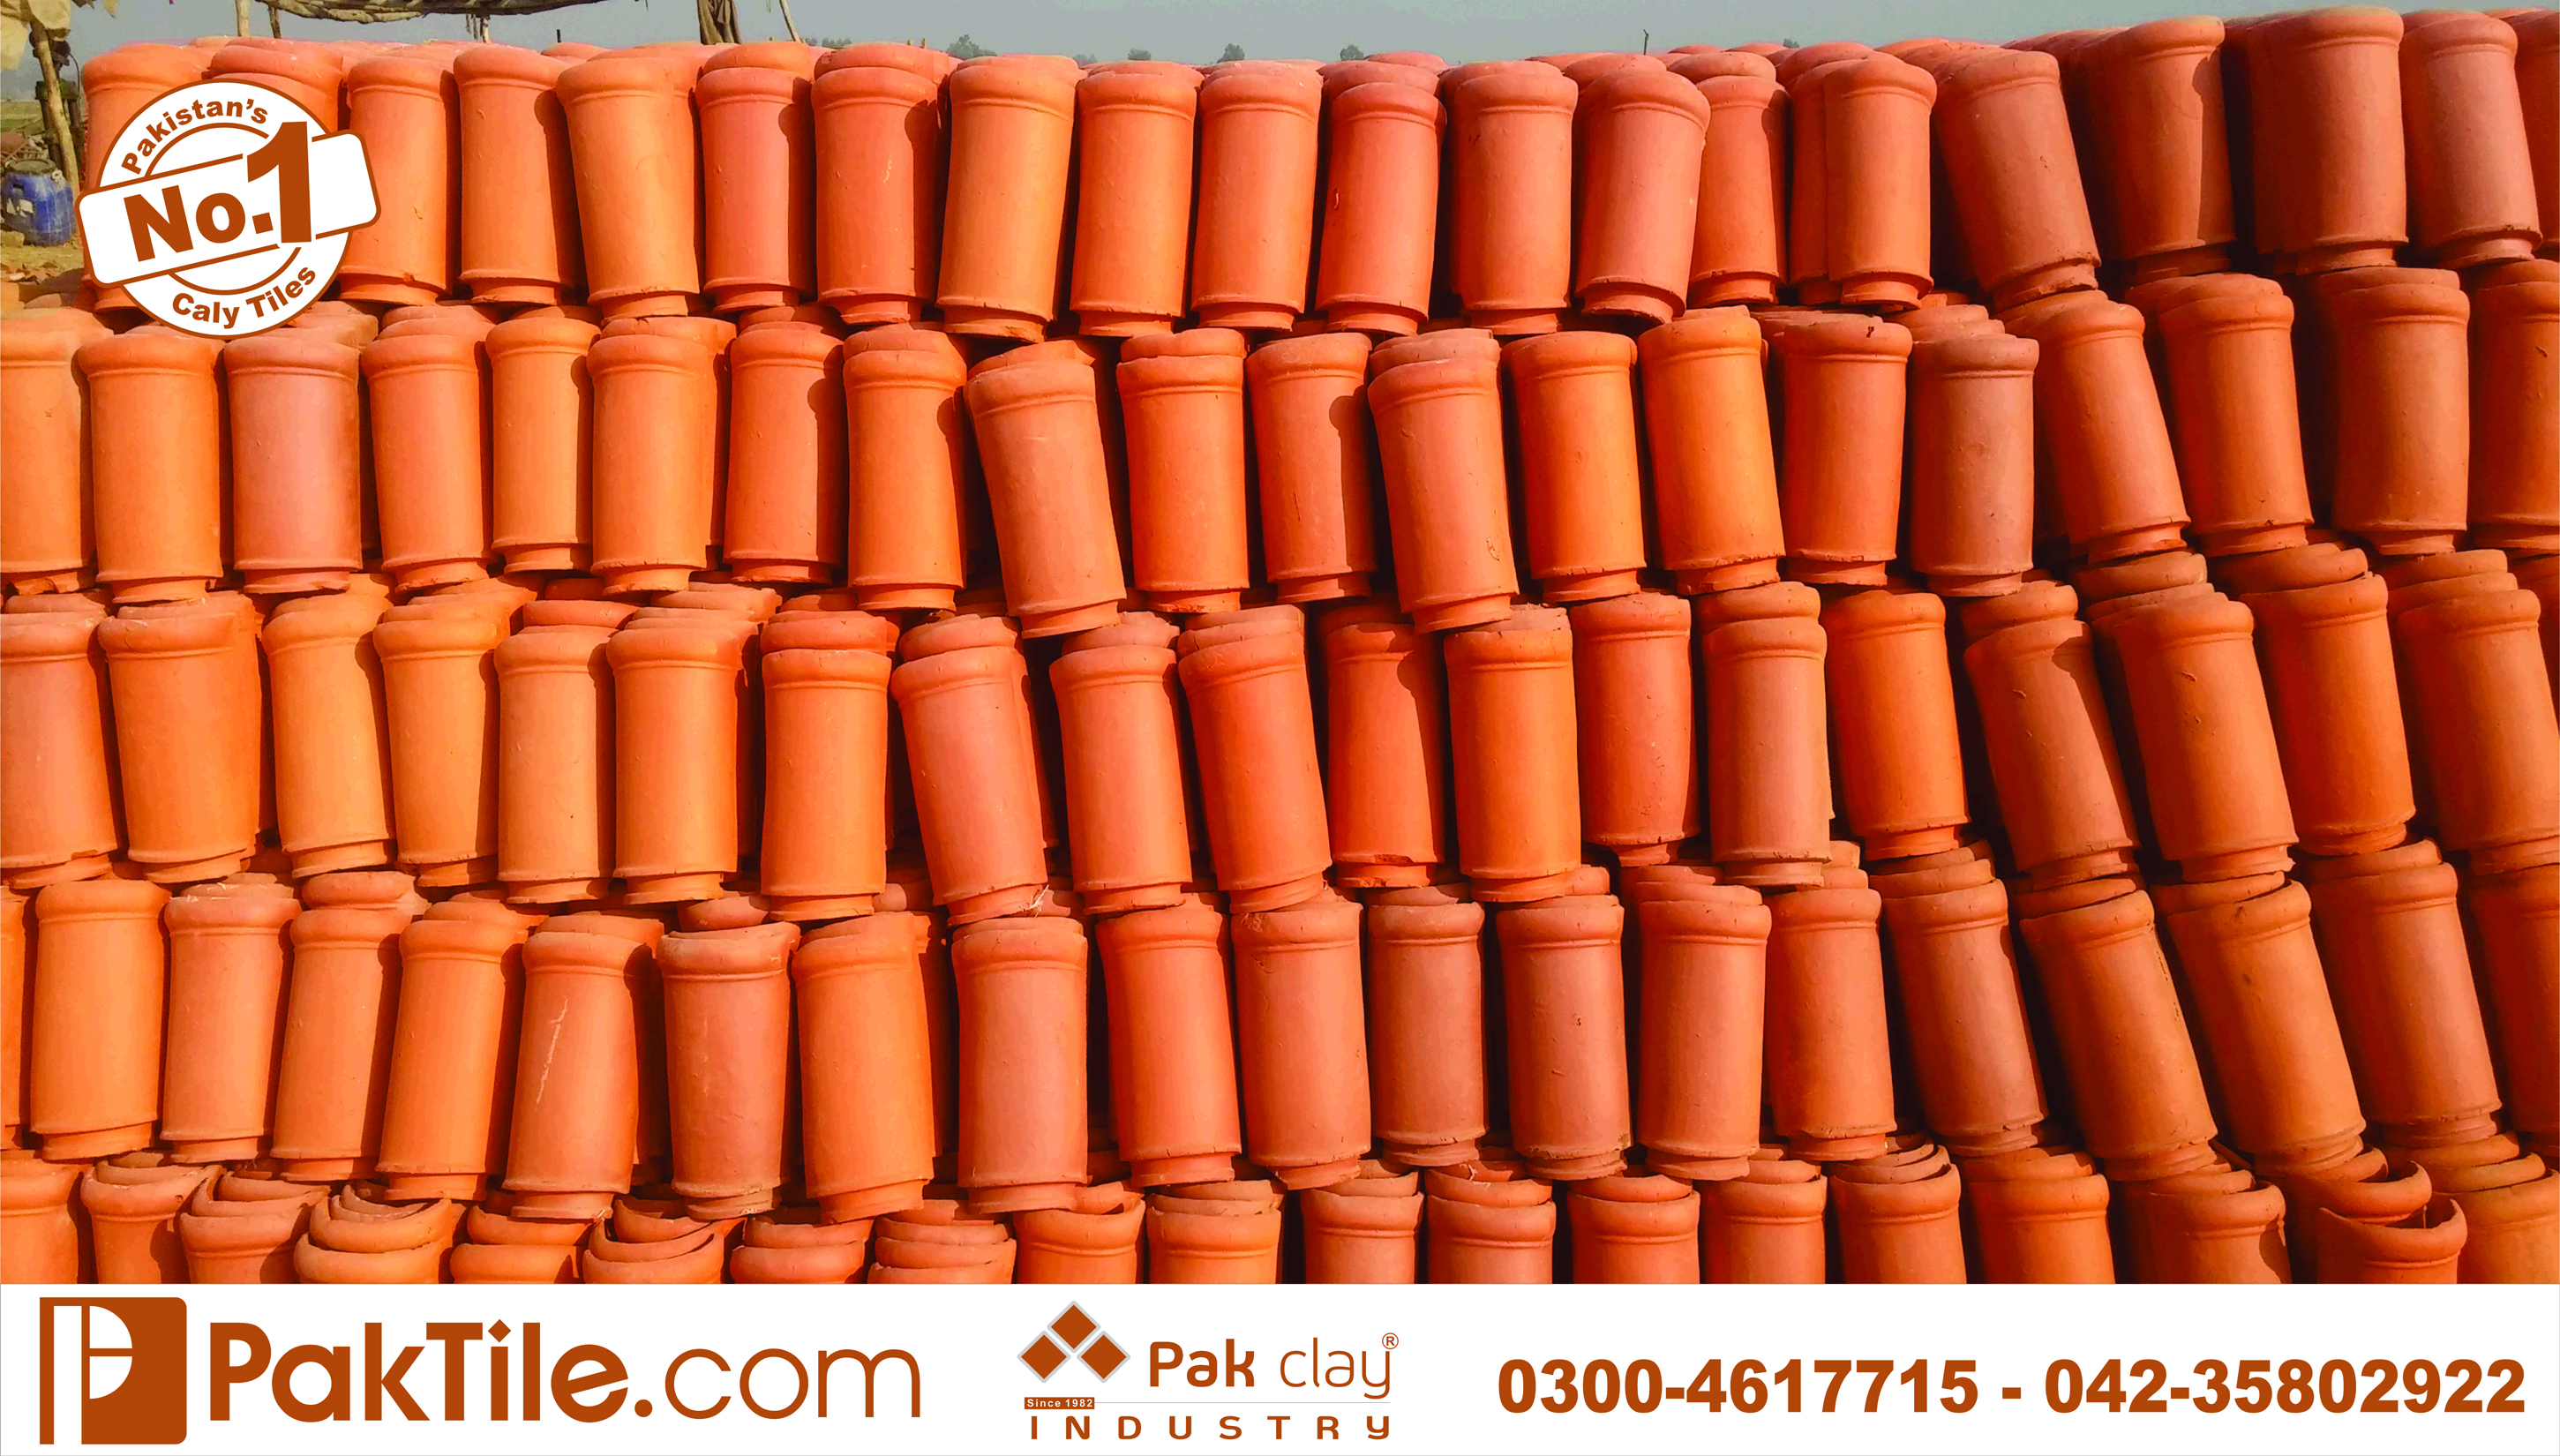 8 Pak clay glazed terracotta roof khaprail tiles manufacturer and supplier rates house design photos in lahore pakistan